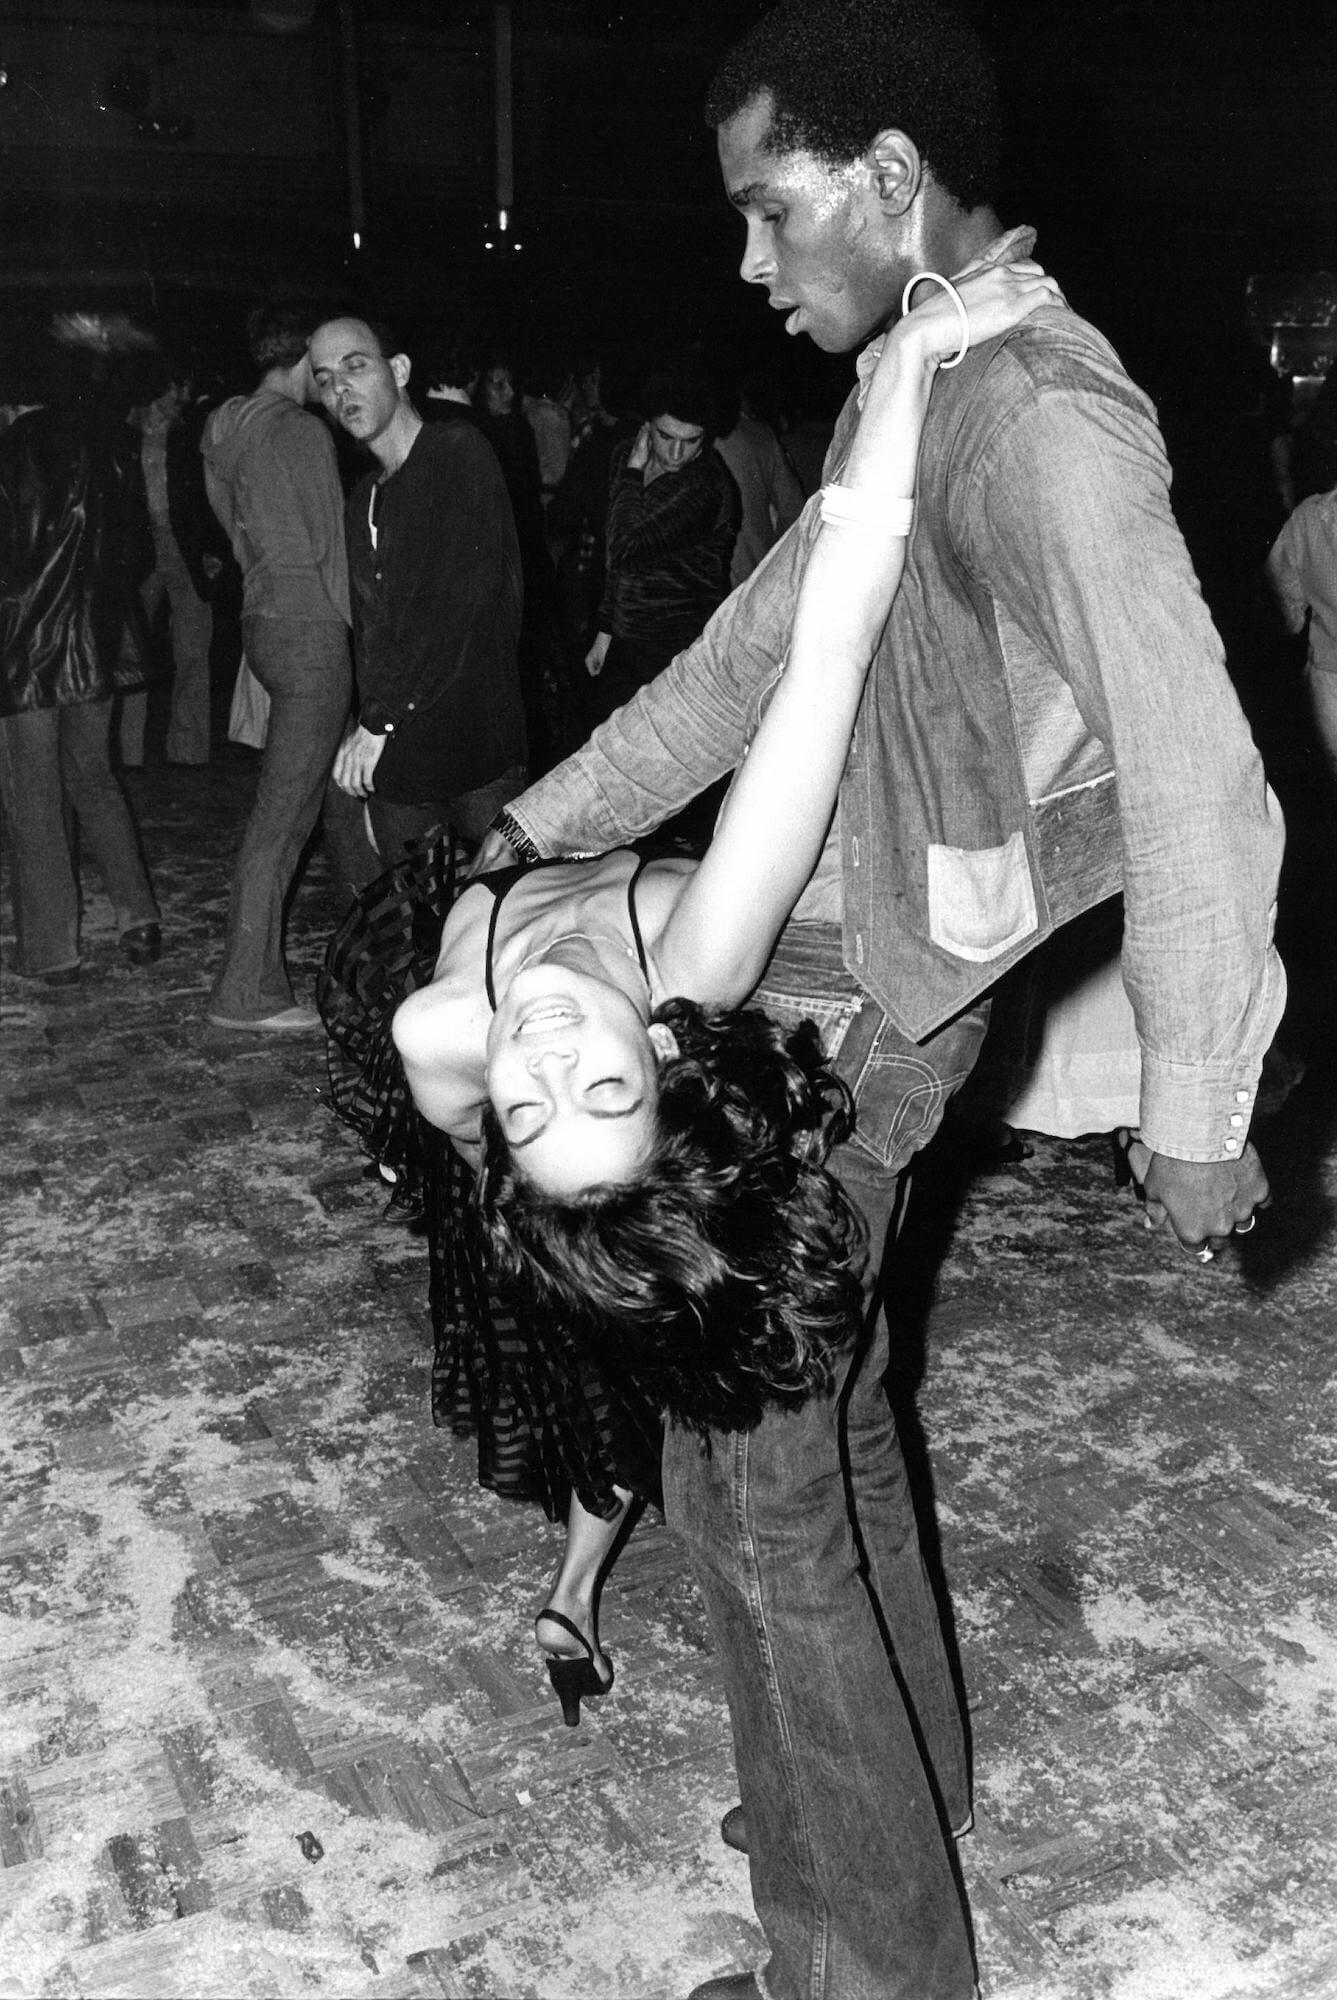 Bianca Jagger and Sterling St. Jacques at Studio 54, 1977